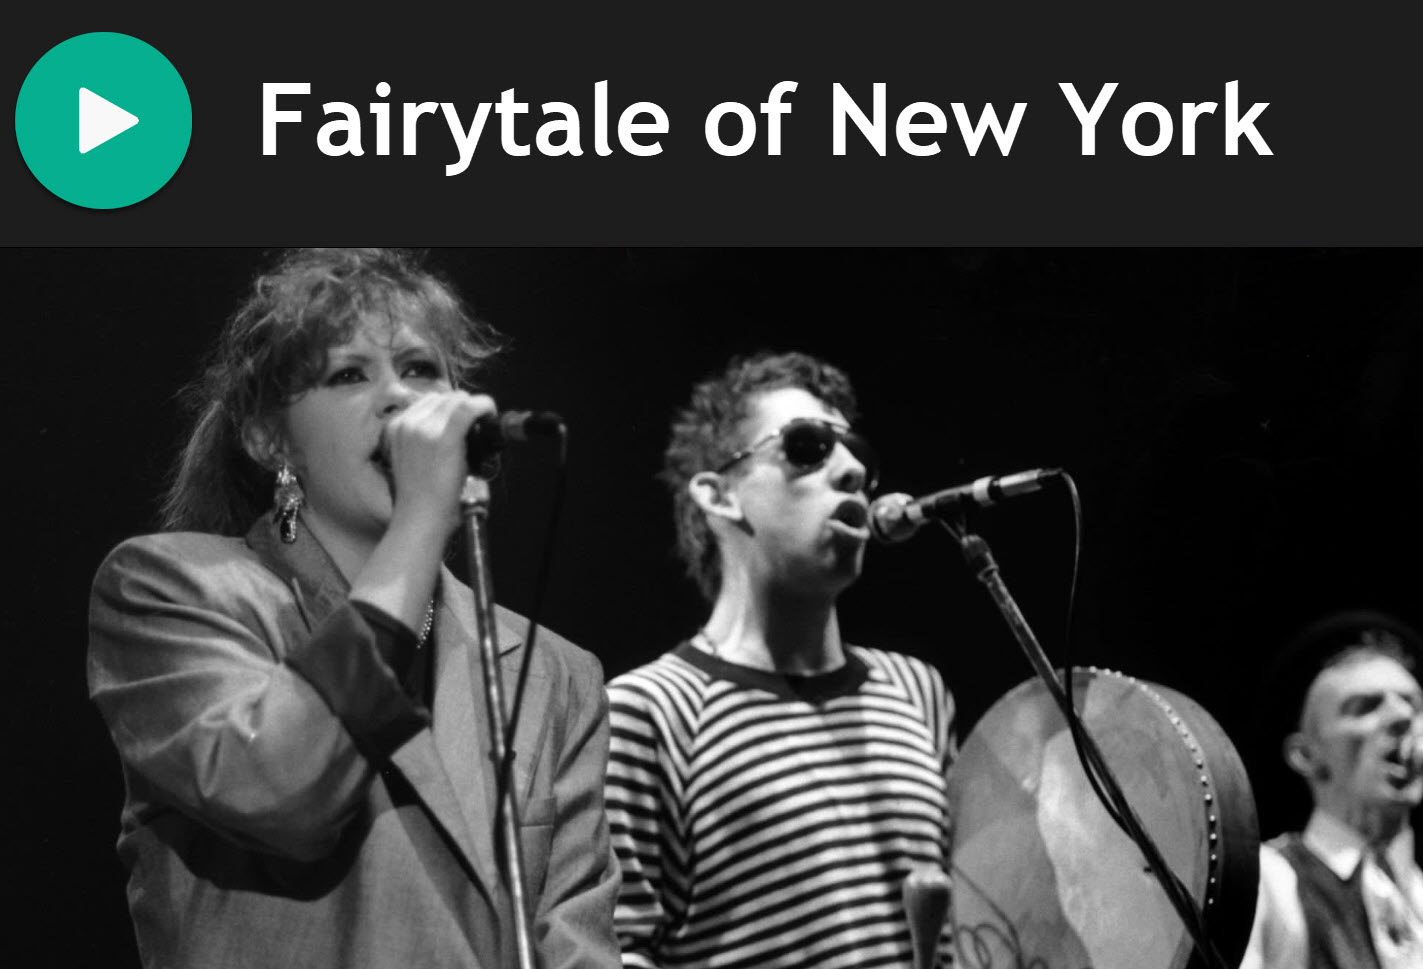 Fairytale of New York by the Pogues for Practice Chanter